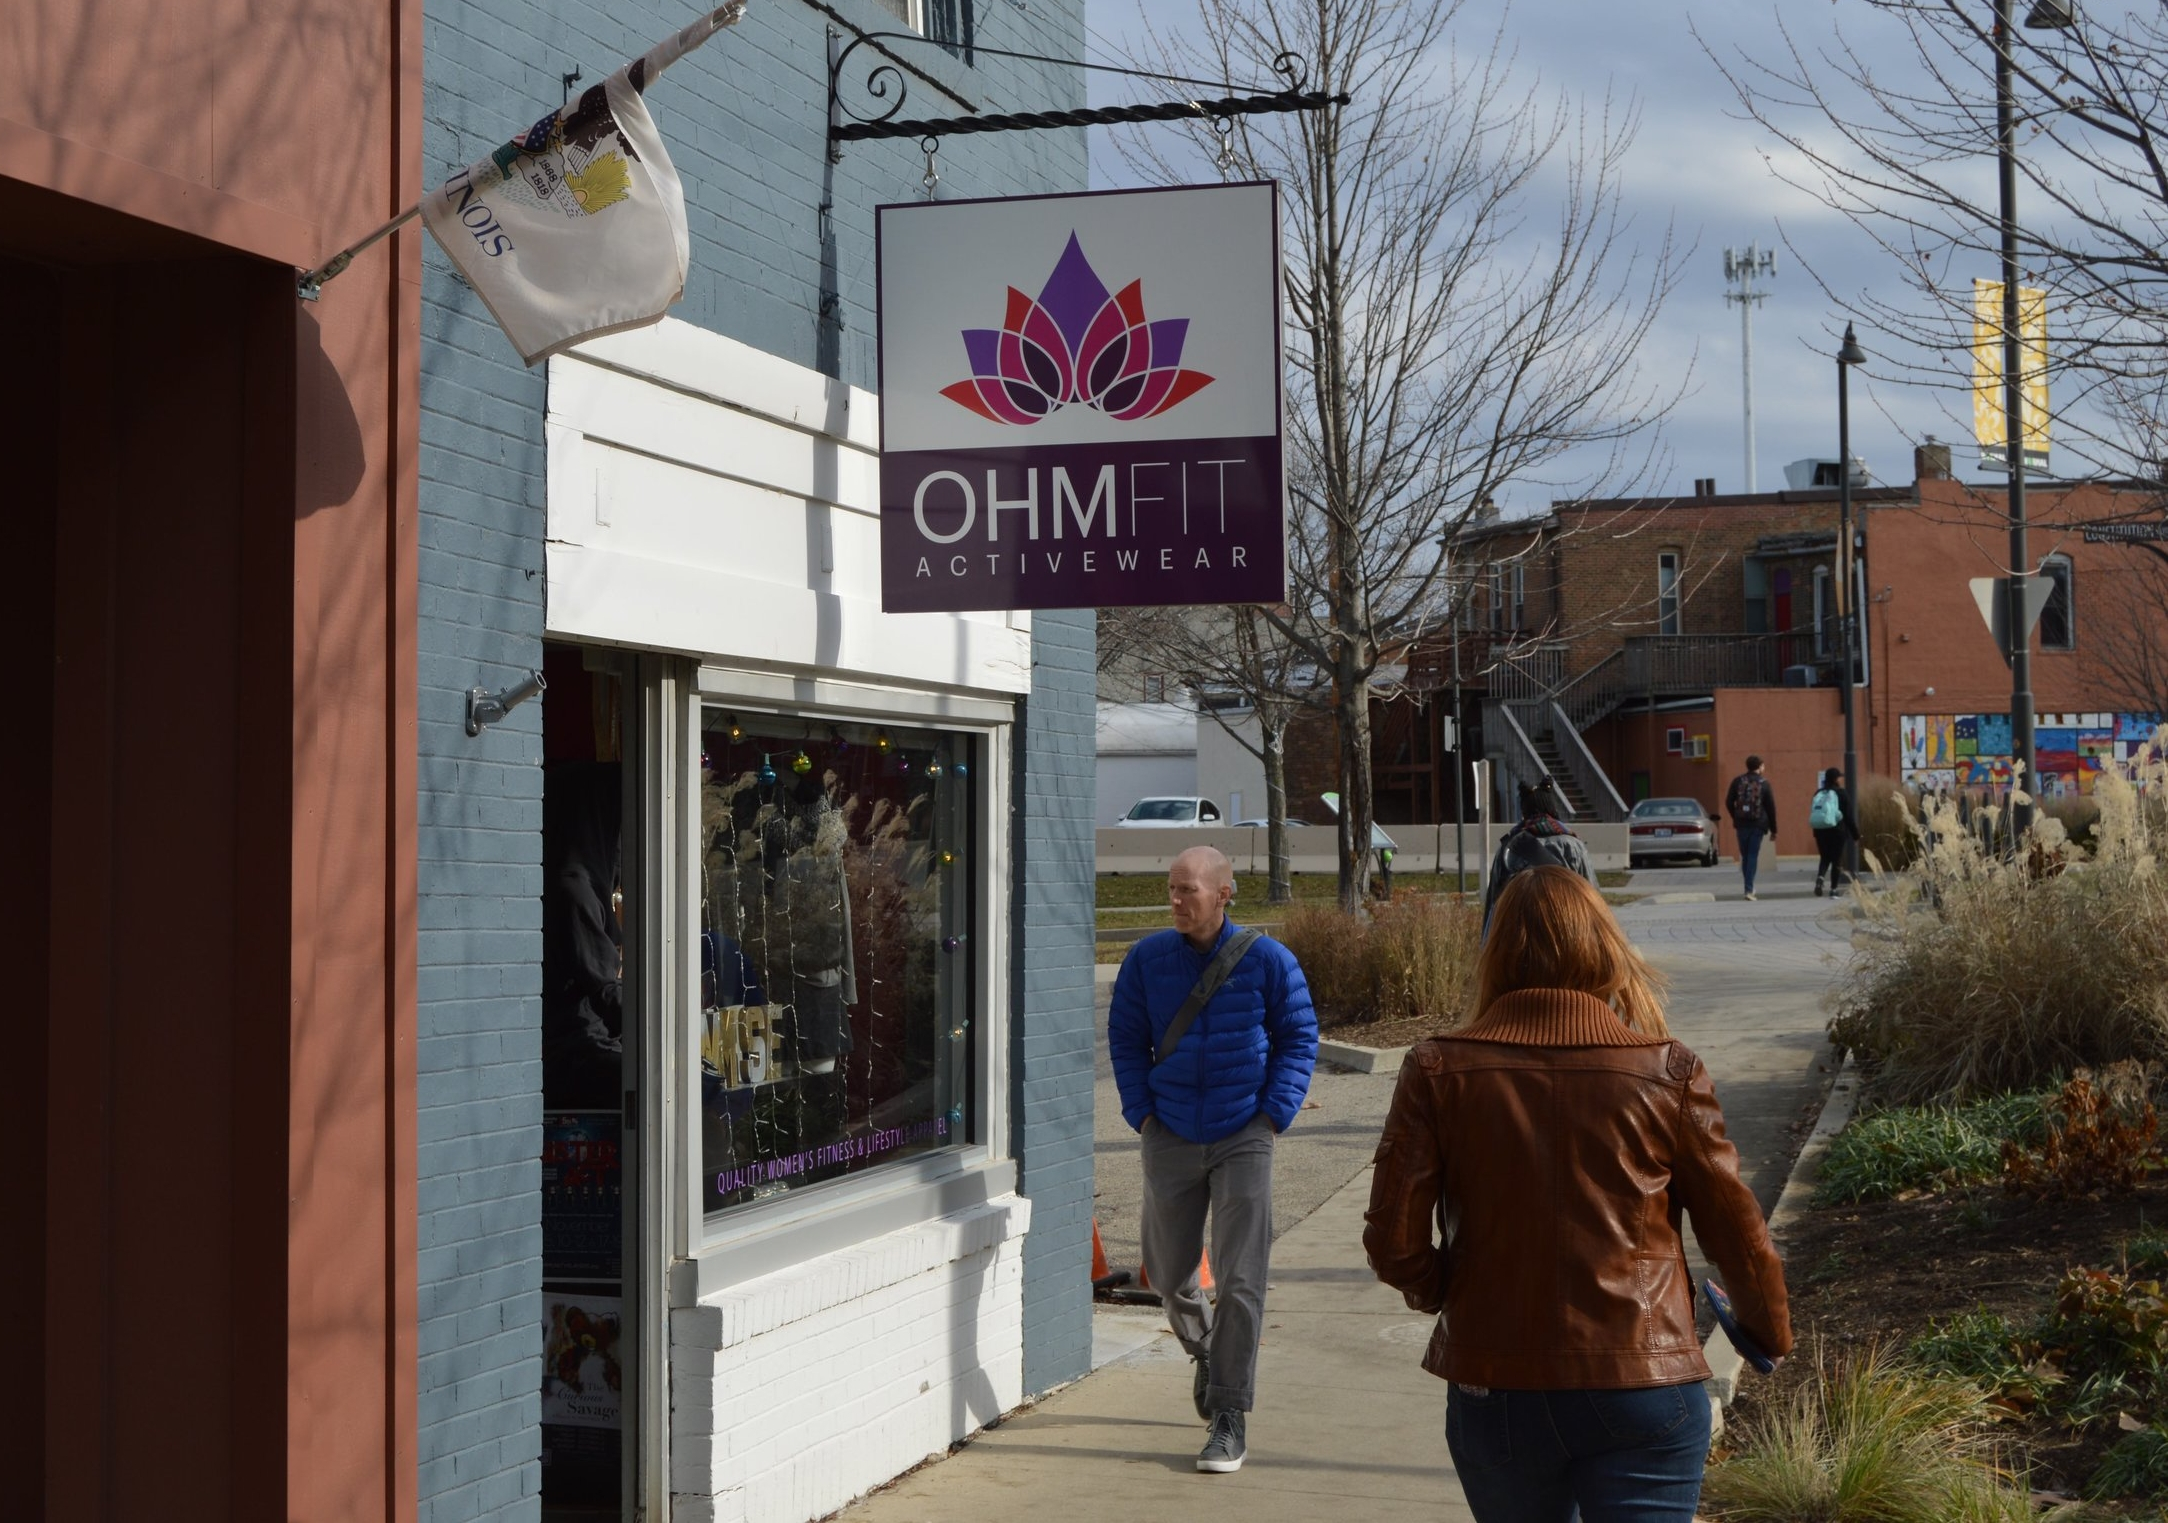 Young's OhmFit retail store receives a lot of foot traffic in her prime location in Uptown Normal - (Christian Prenzler for AdaptBN)